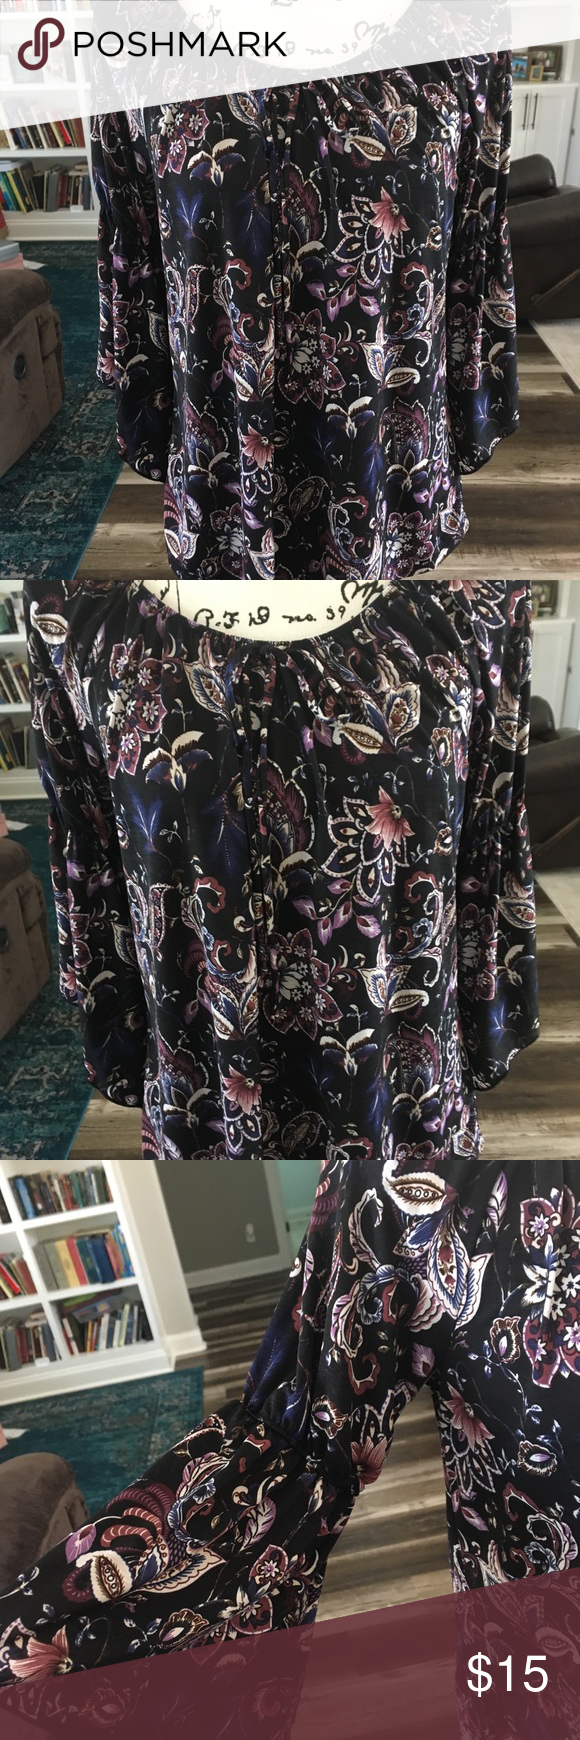 NAIF | Paisley Bell Split Sleeve Top Elastic neckline can be worn off or on the shoulder. Split bell sleeve adds a feminine boho touch. Black with pur…